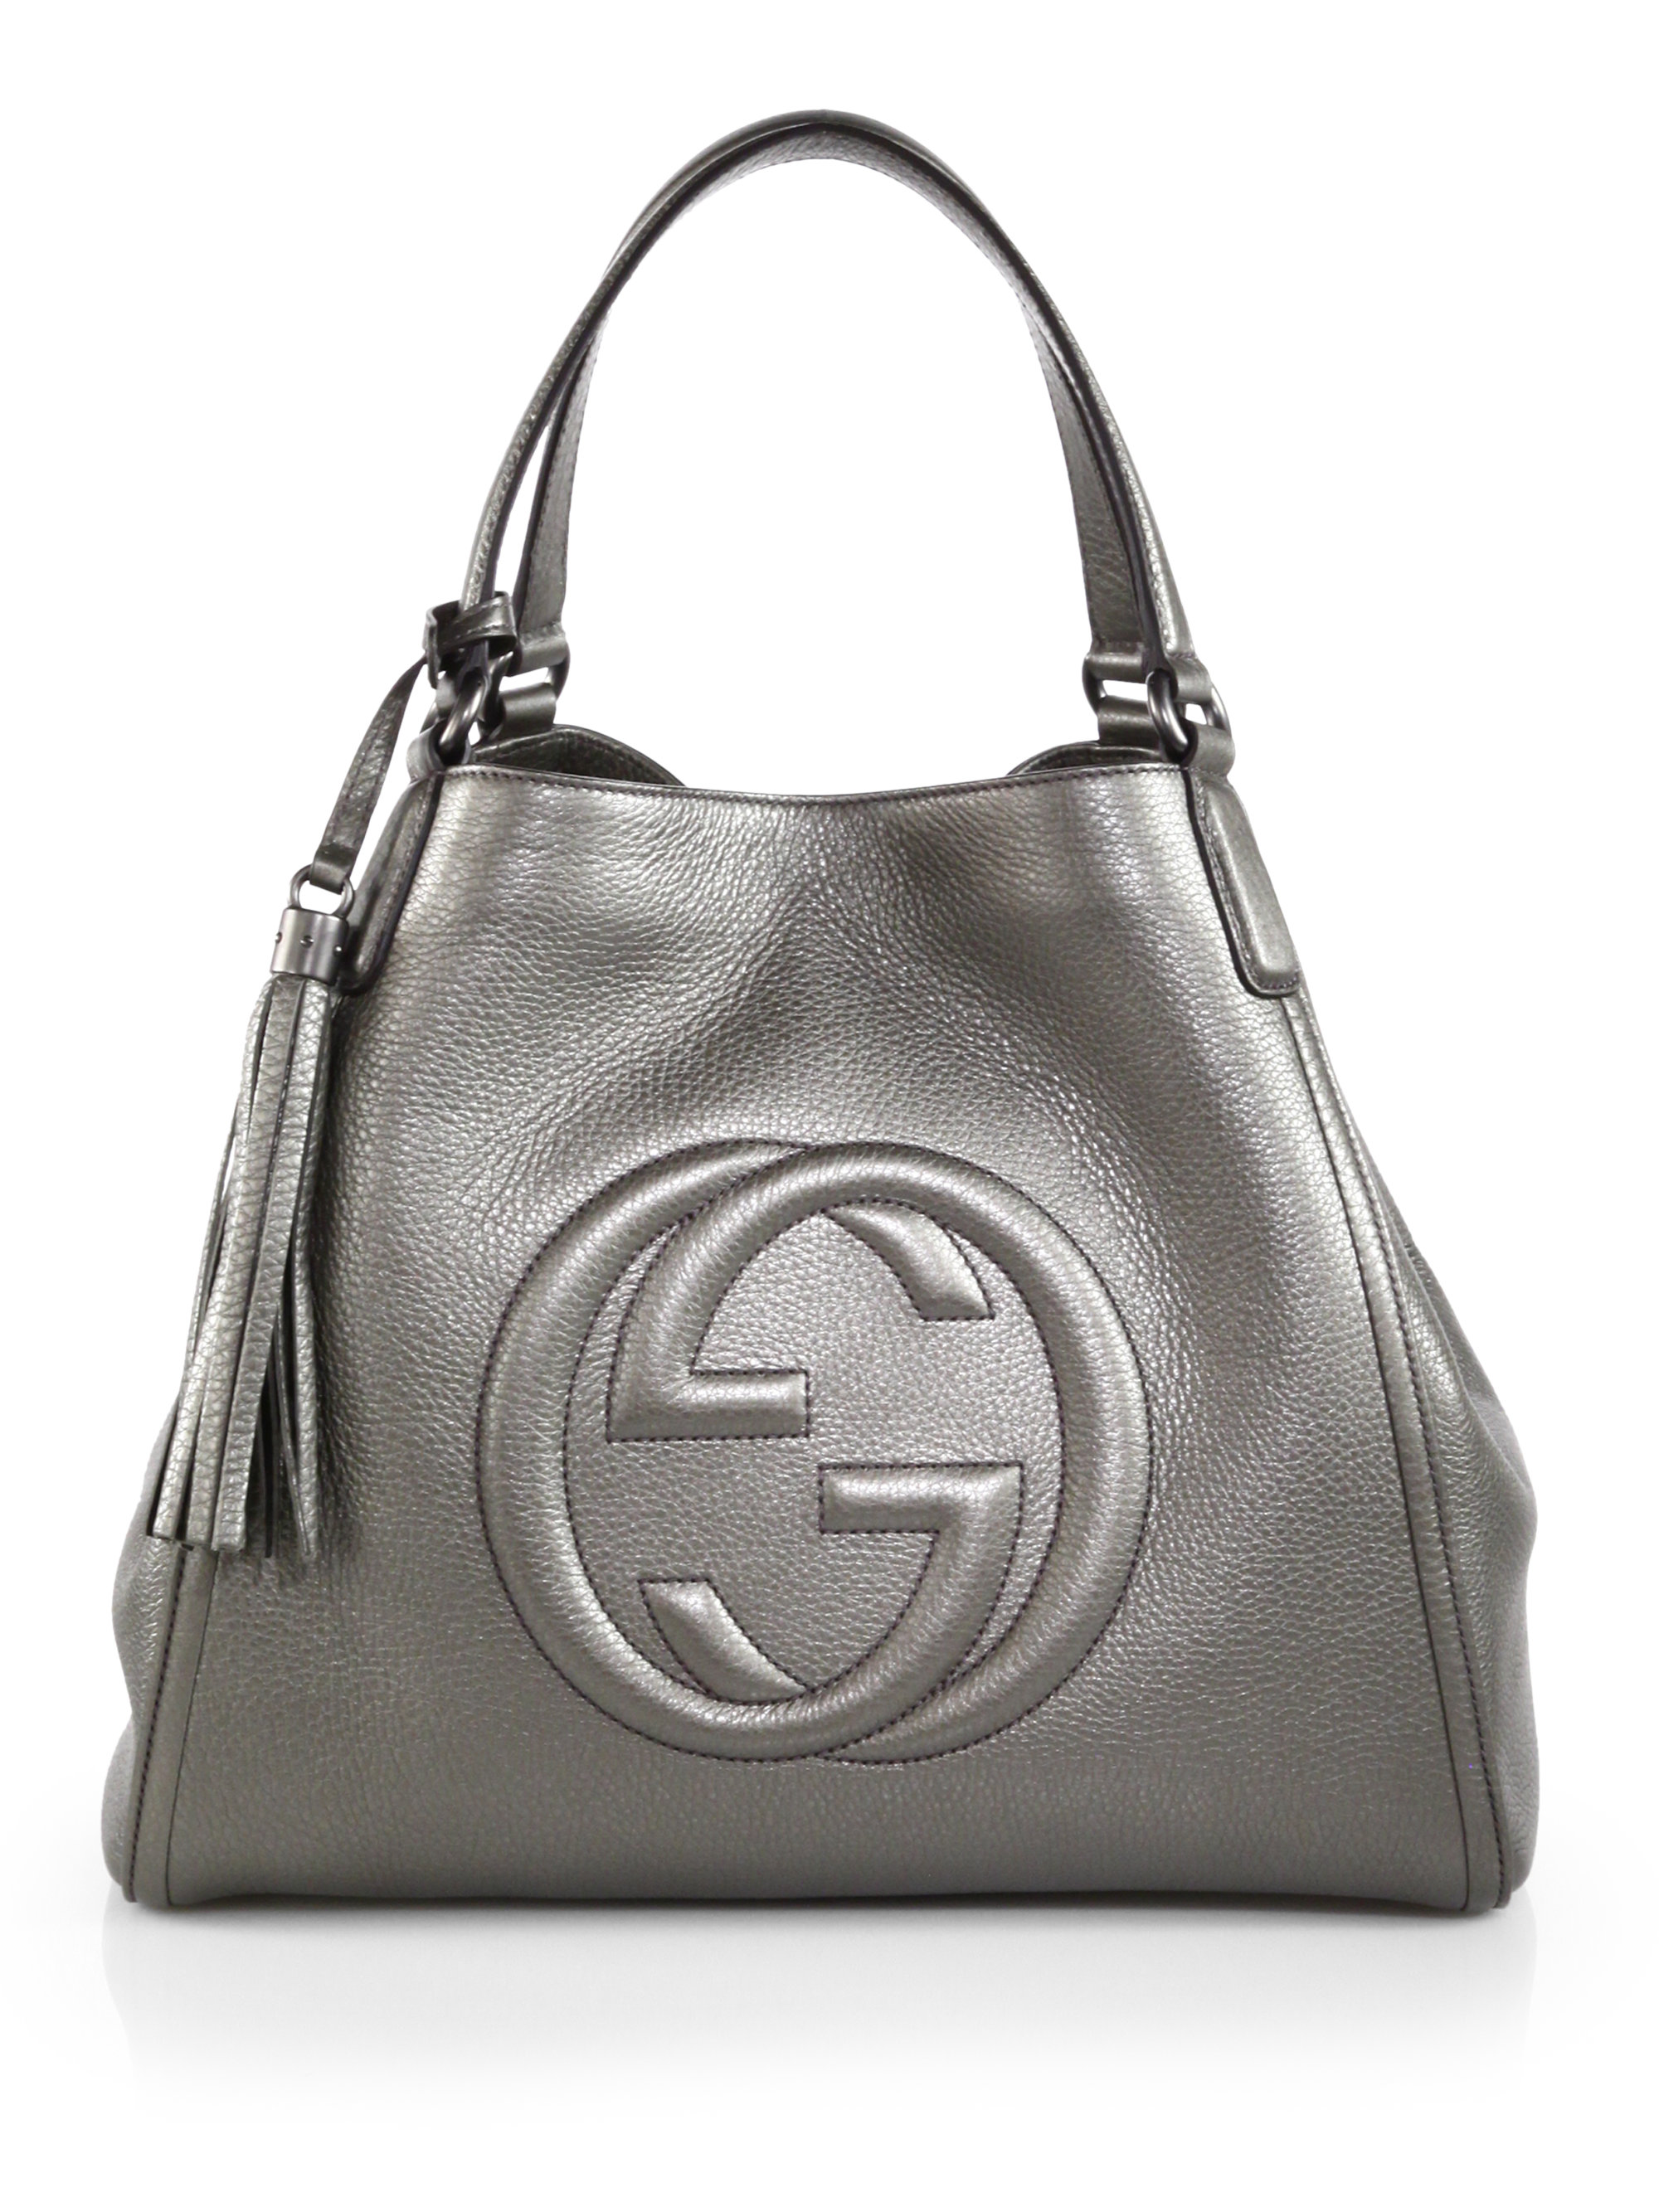 376afa180cb4 Gallery. Previously sold at  Saks Fifth Avenue · Women s Gucci Soho Bag